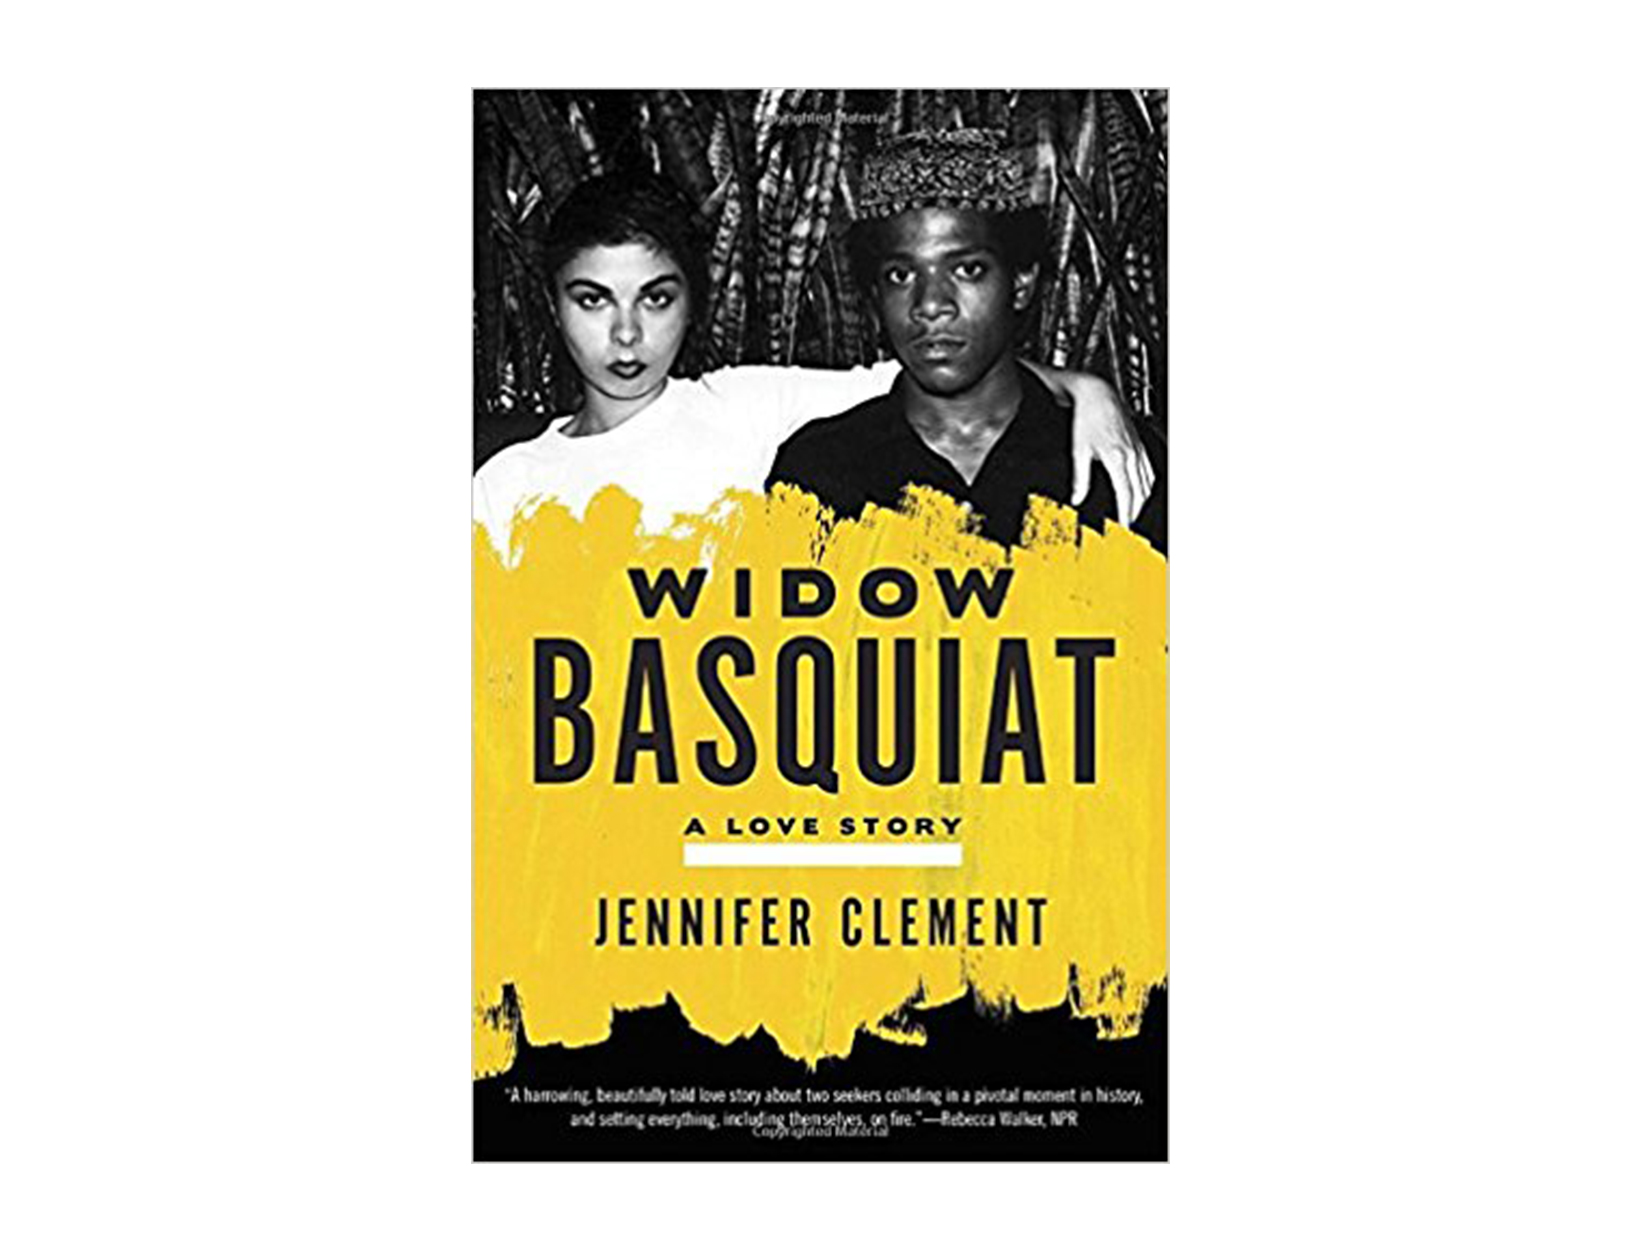 Widow Basquiat: A Love Story by Jennifer Clement